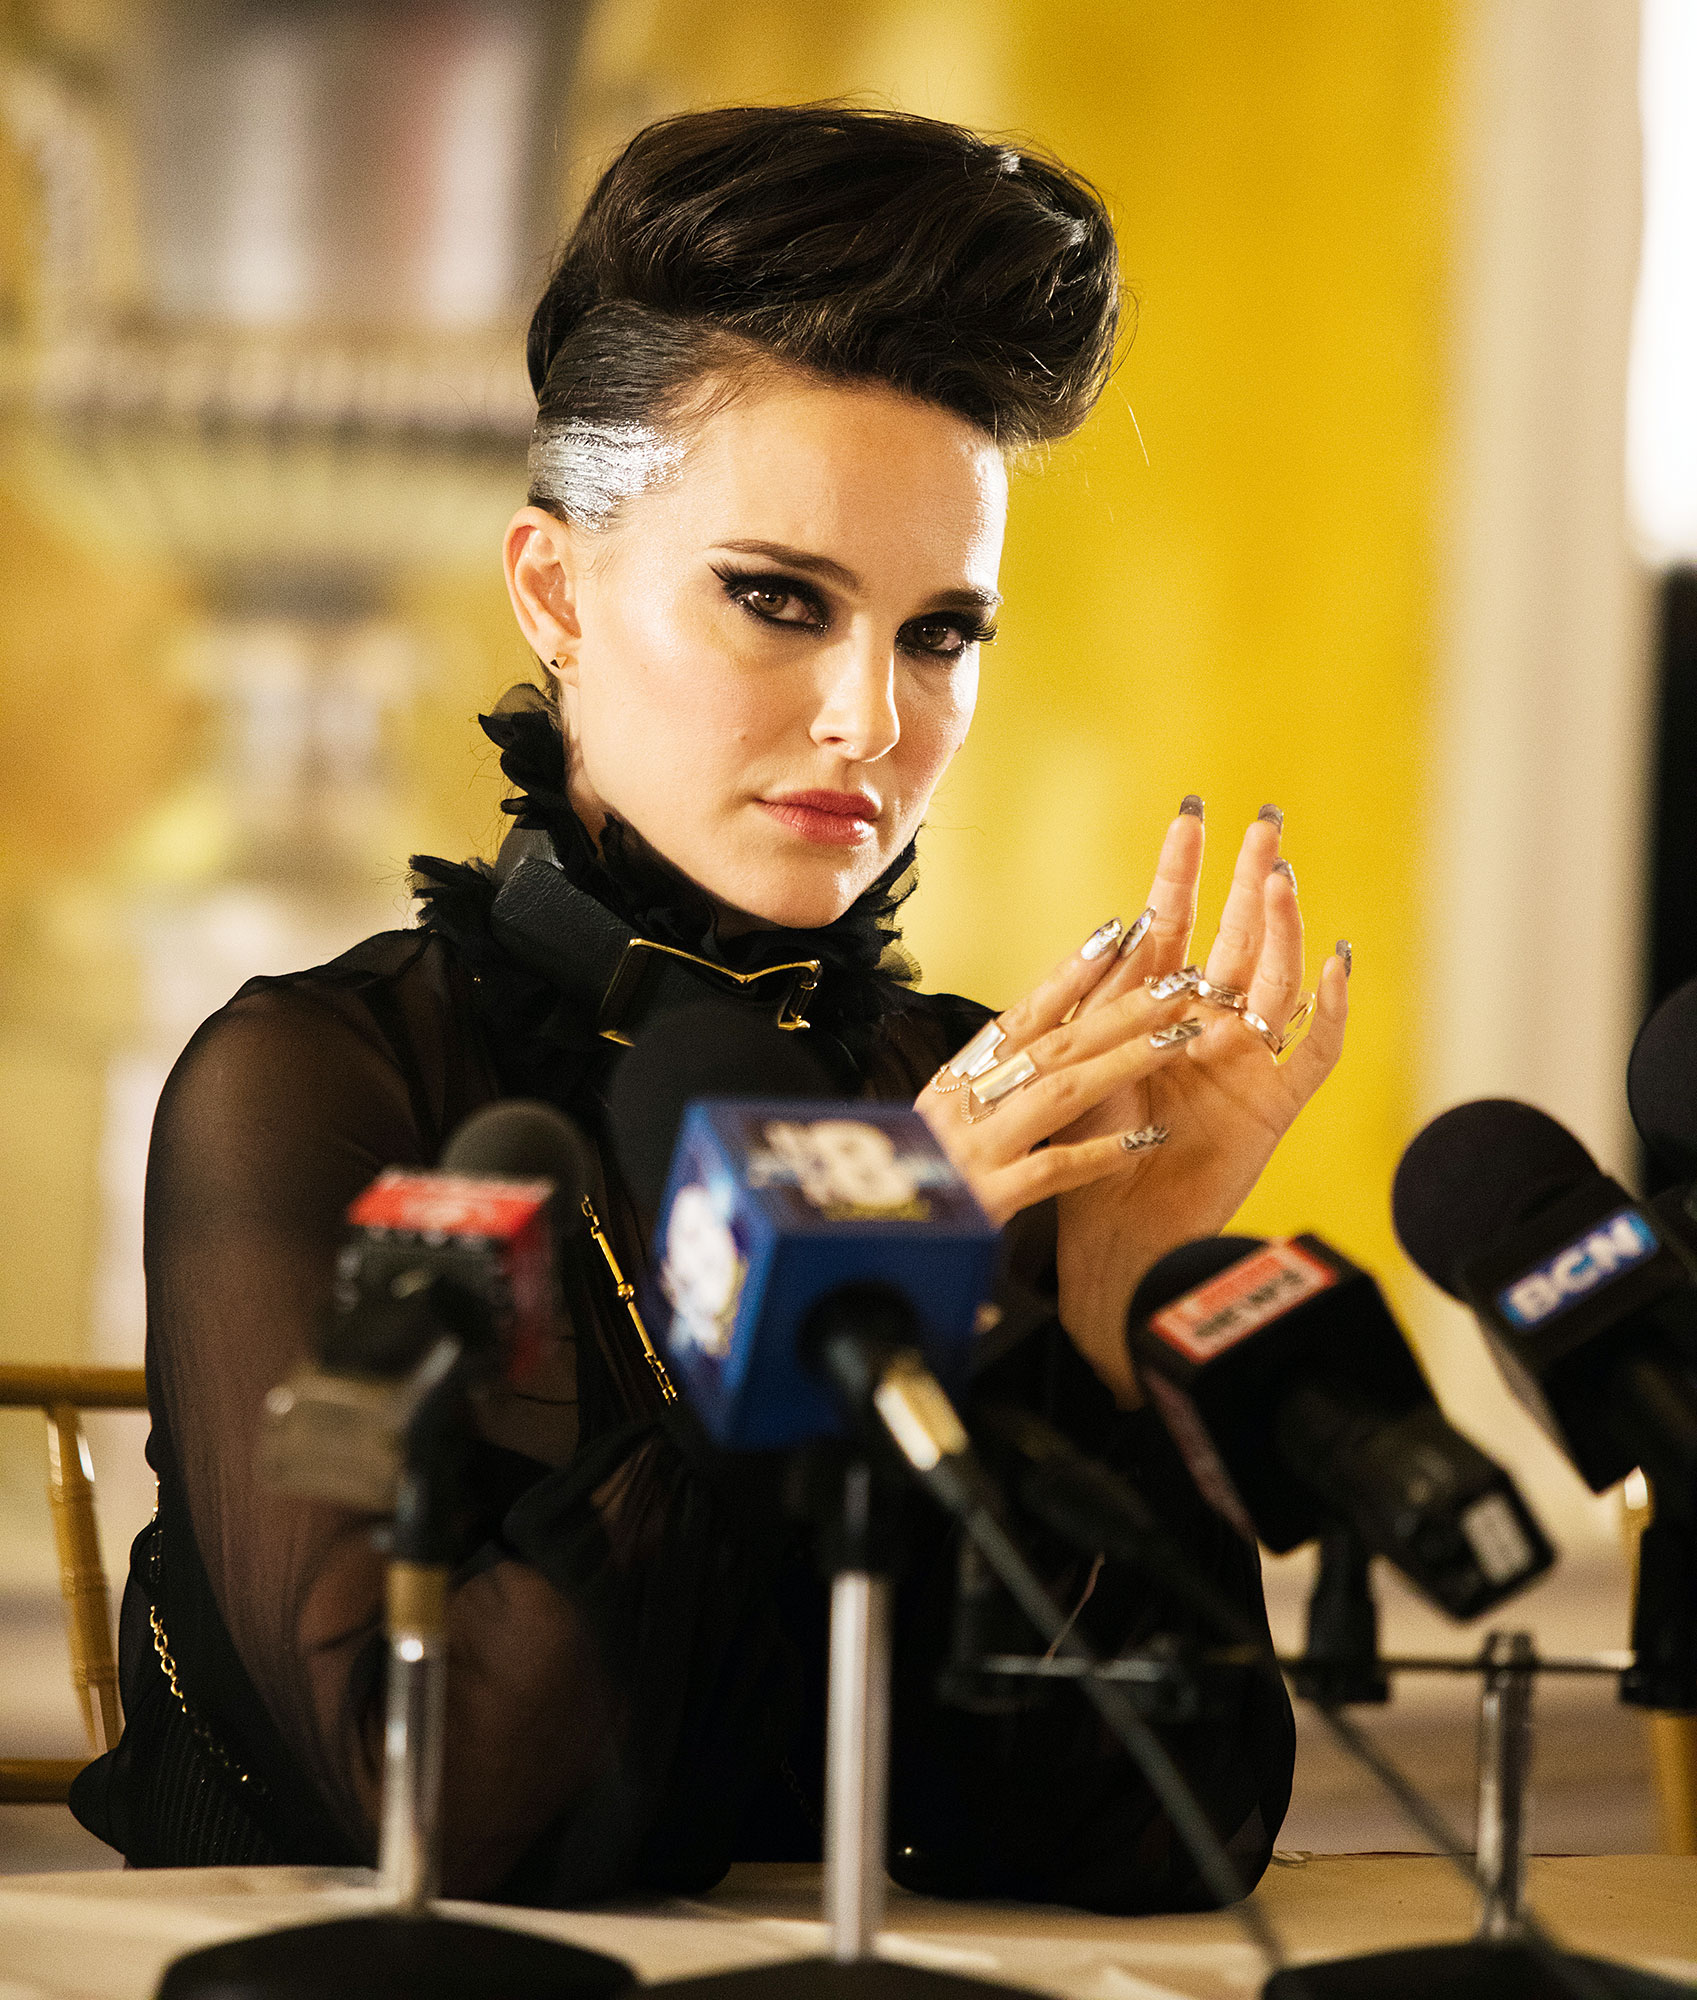 Natalie Portman Vox Lux Worst Movies of 2019